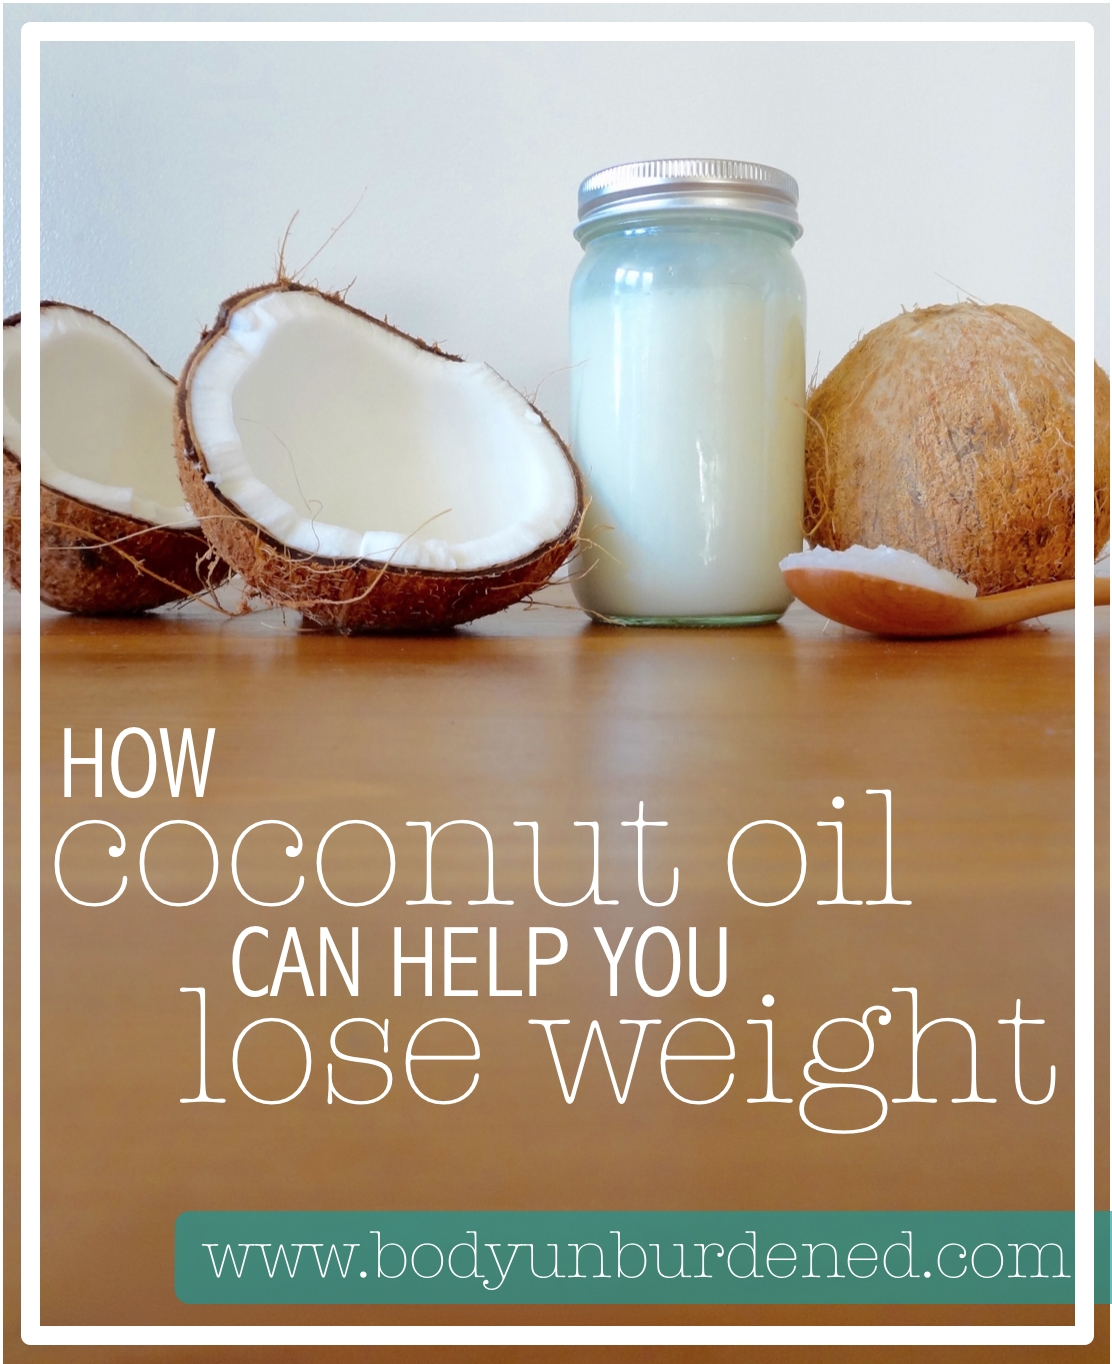 While a nutrient-dense real food diet will help body weight to normalize over time, coconut oil can aid the weight loss process! Natural health, real food, natural remedy. #weightlossmotivation